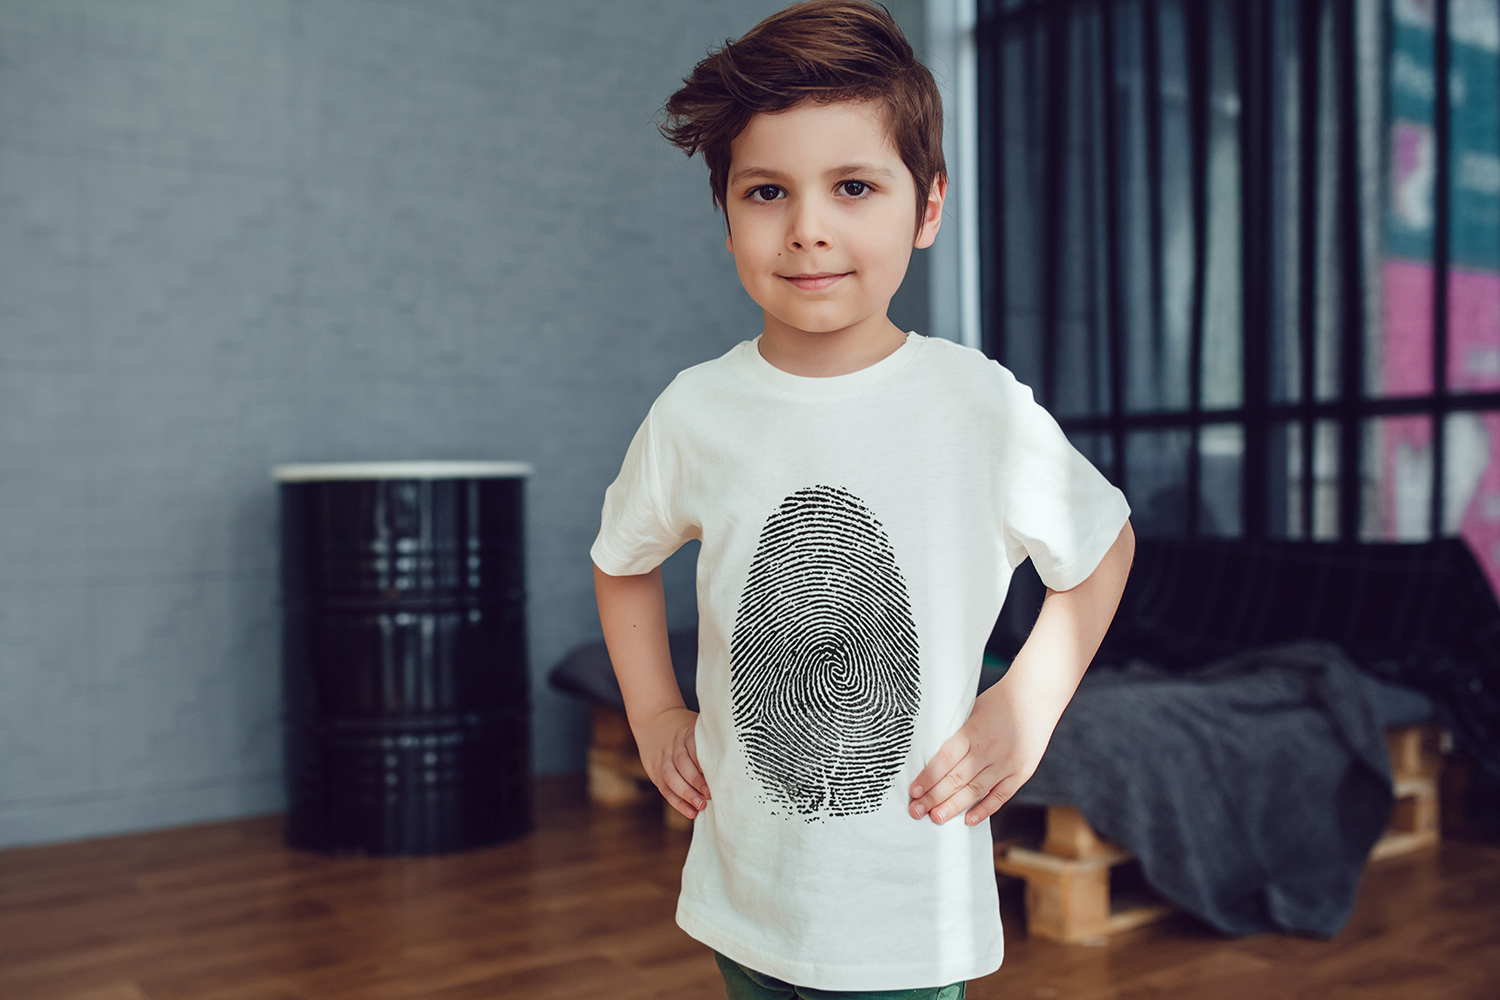 Kids T-Shirt Mock-Up Vol.2 2017 example image 7